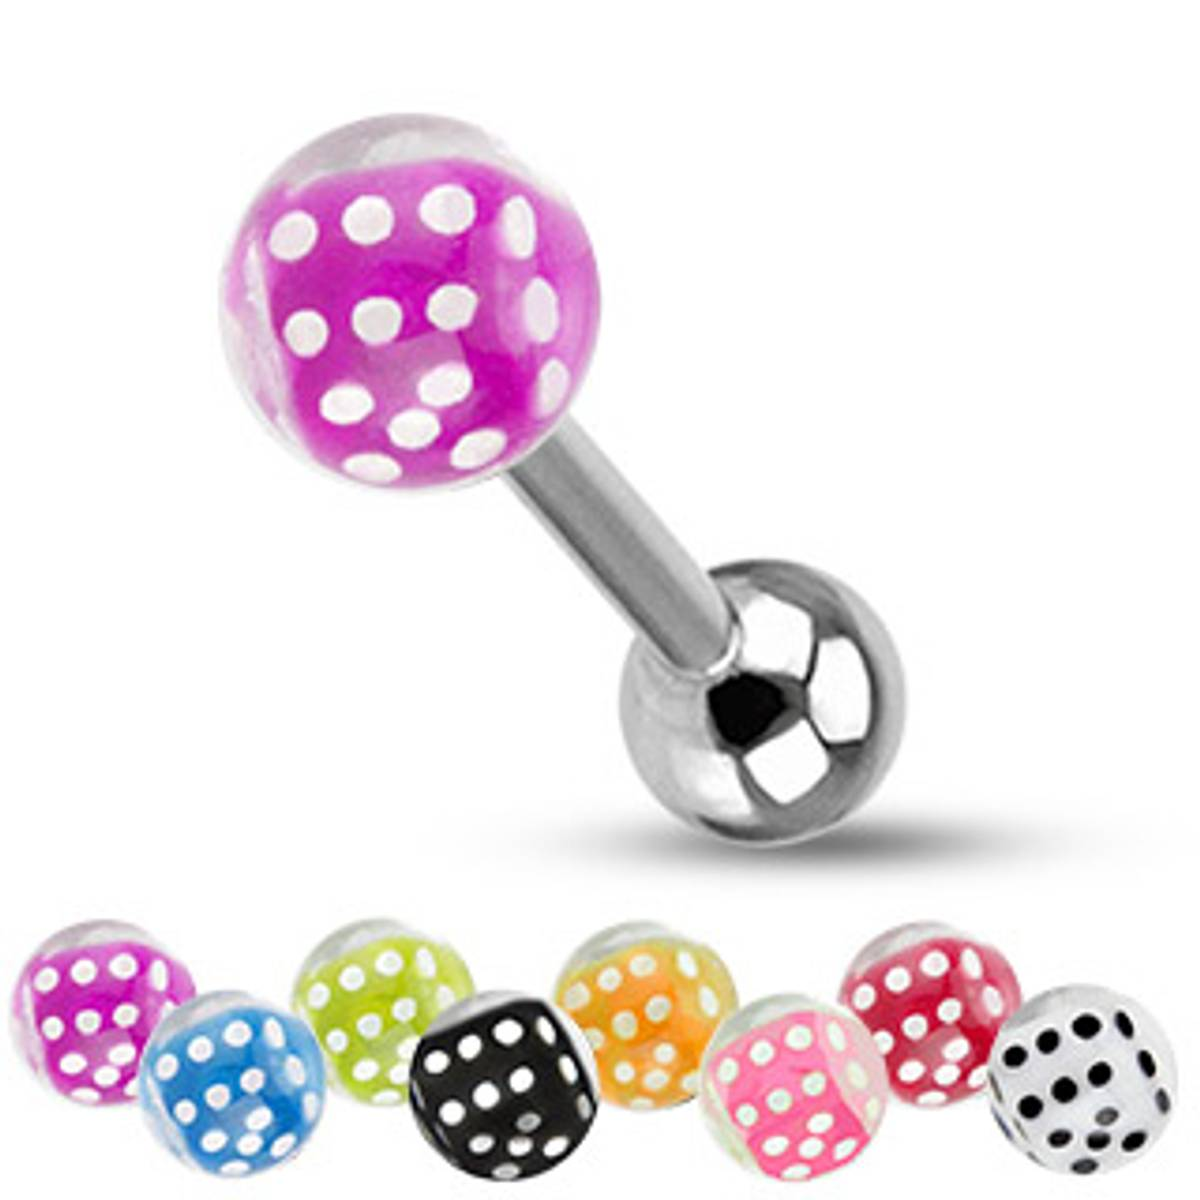 Acrylic barbell dice in bubble ball